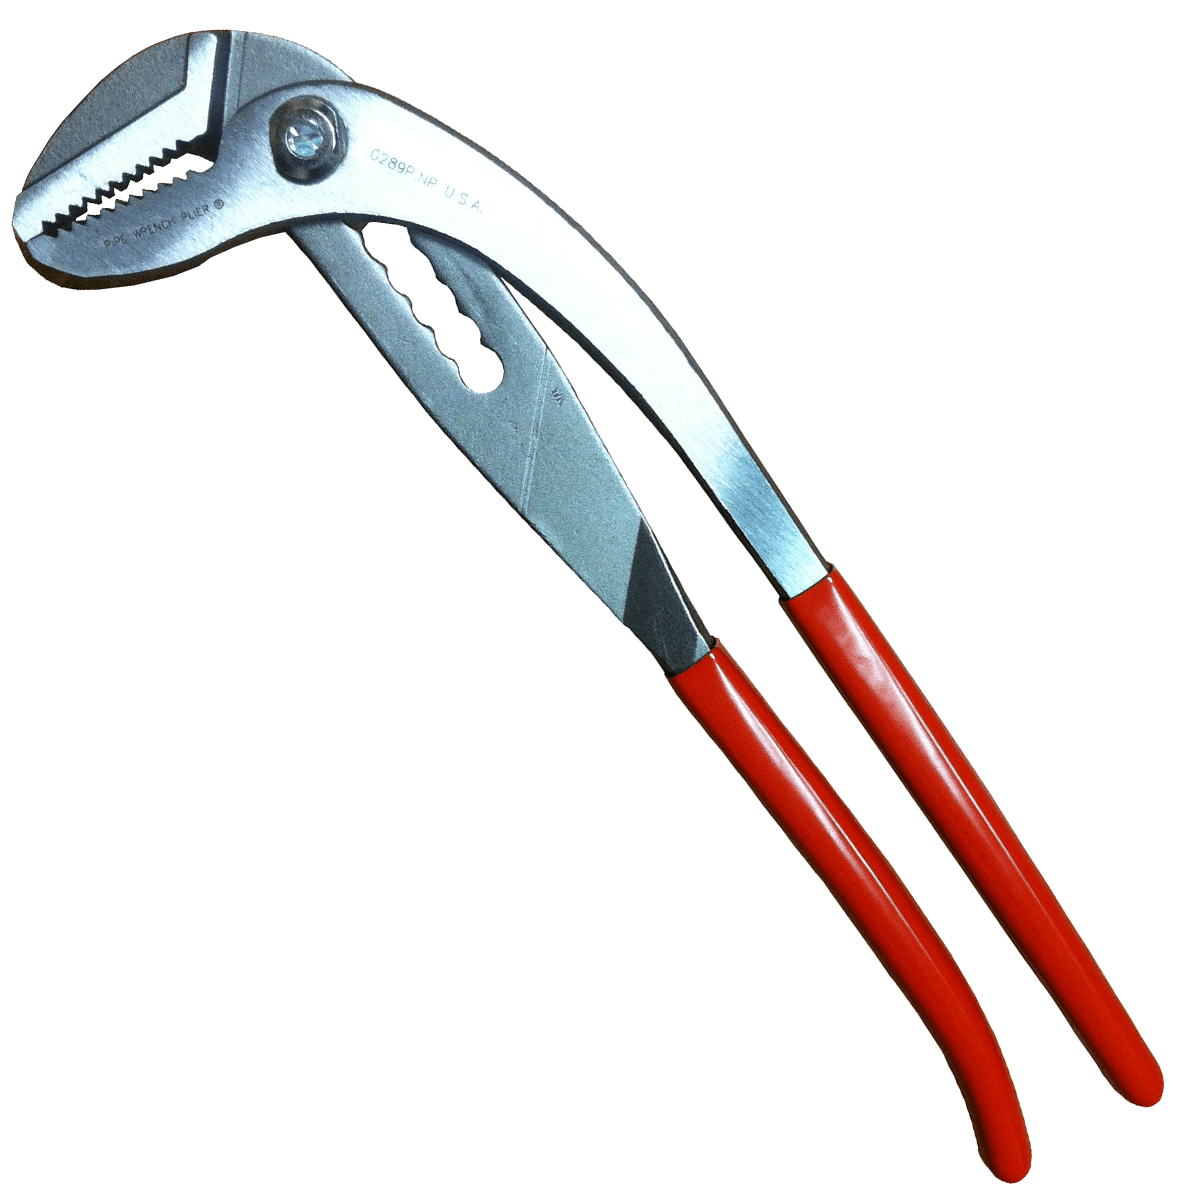 12 3 4 pipe wrench pliers g289p wilde tool